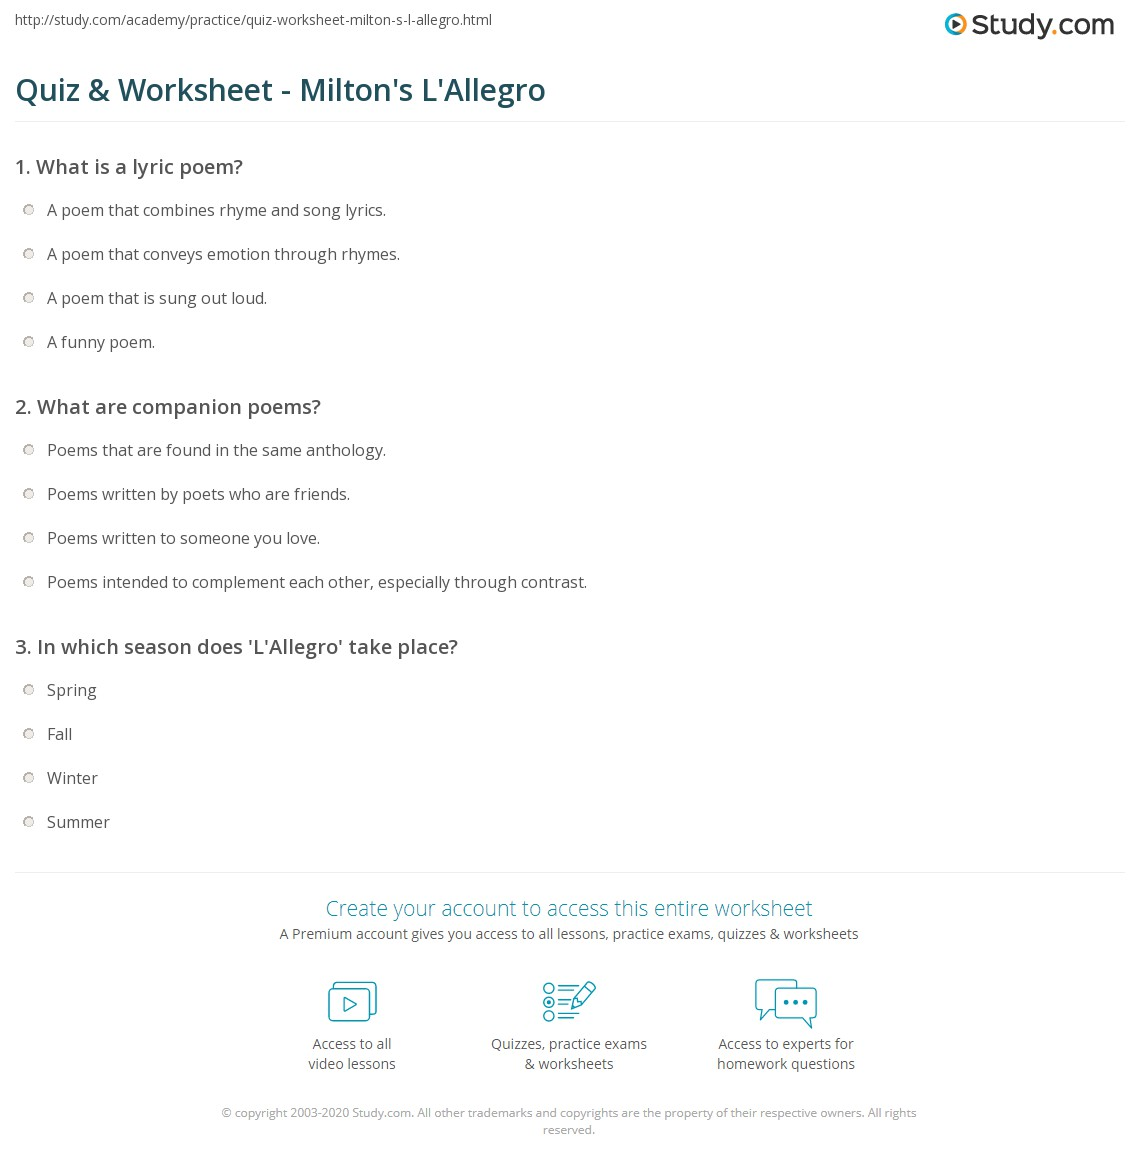 Quiz & Worksheet - Milton's L'Allegro | Study com